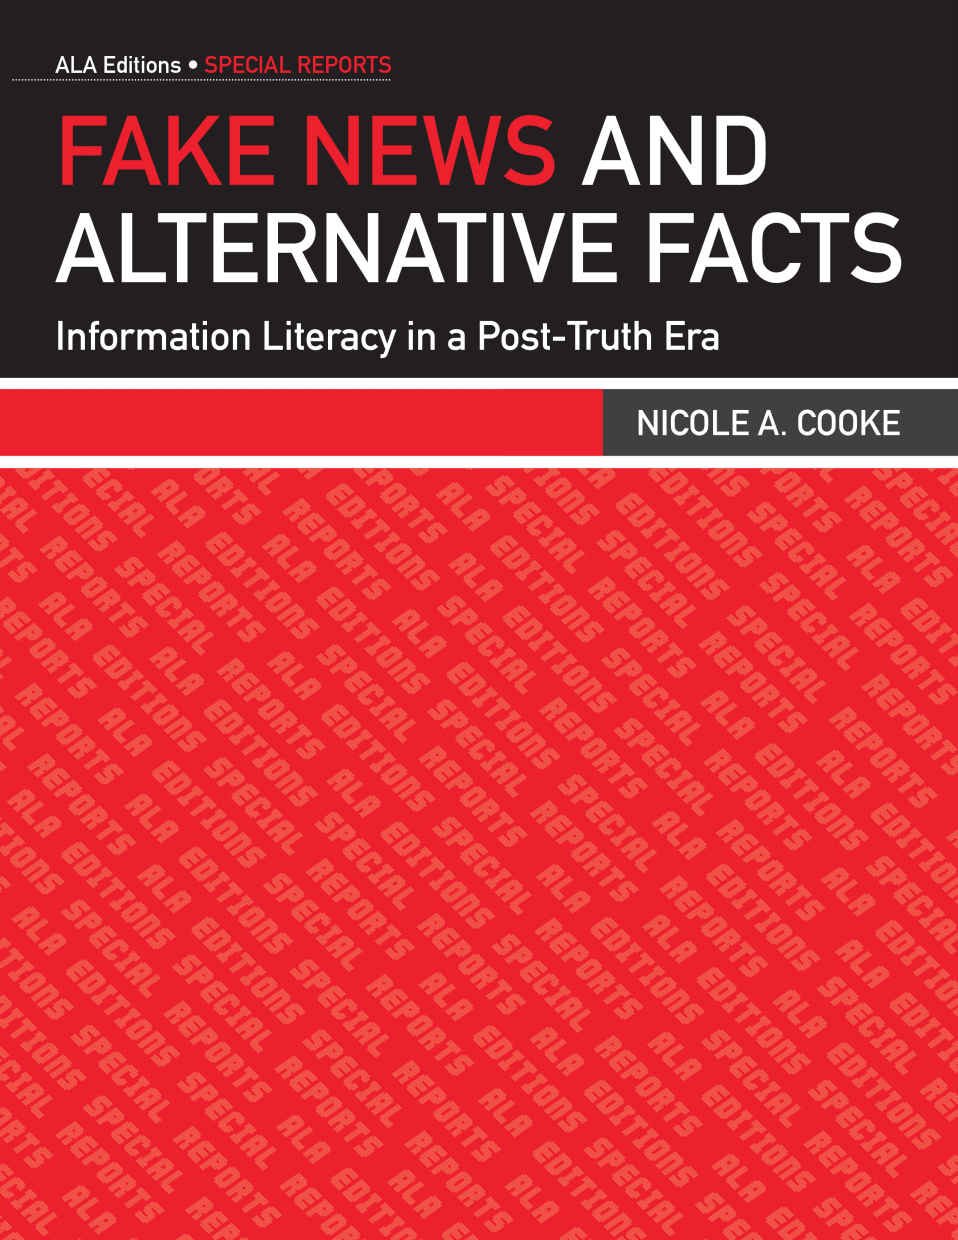 Fake News and Alternative Facts: Information Literacy in a Post-Truth Era